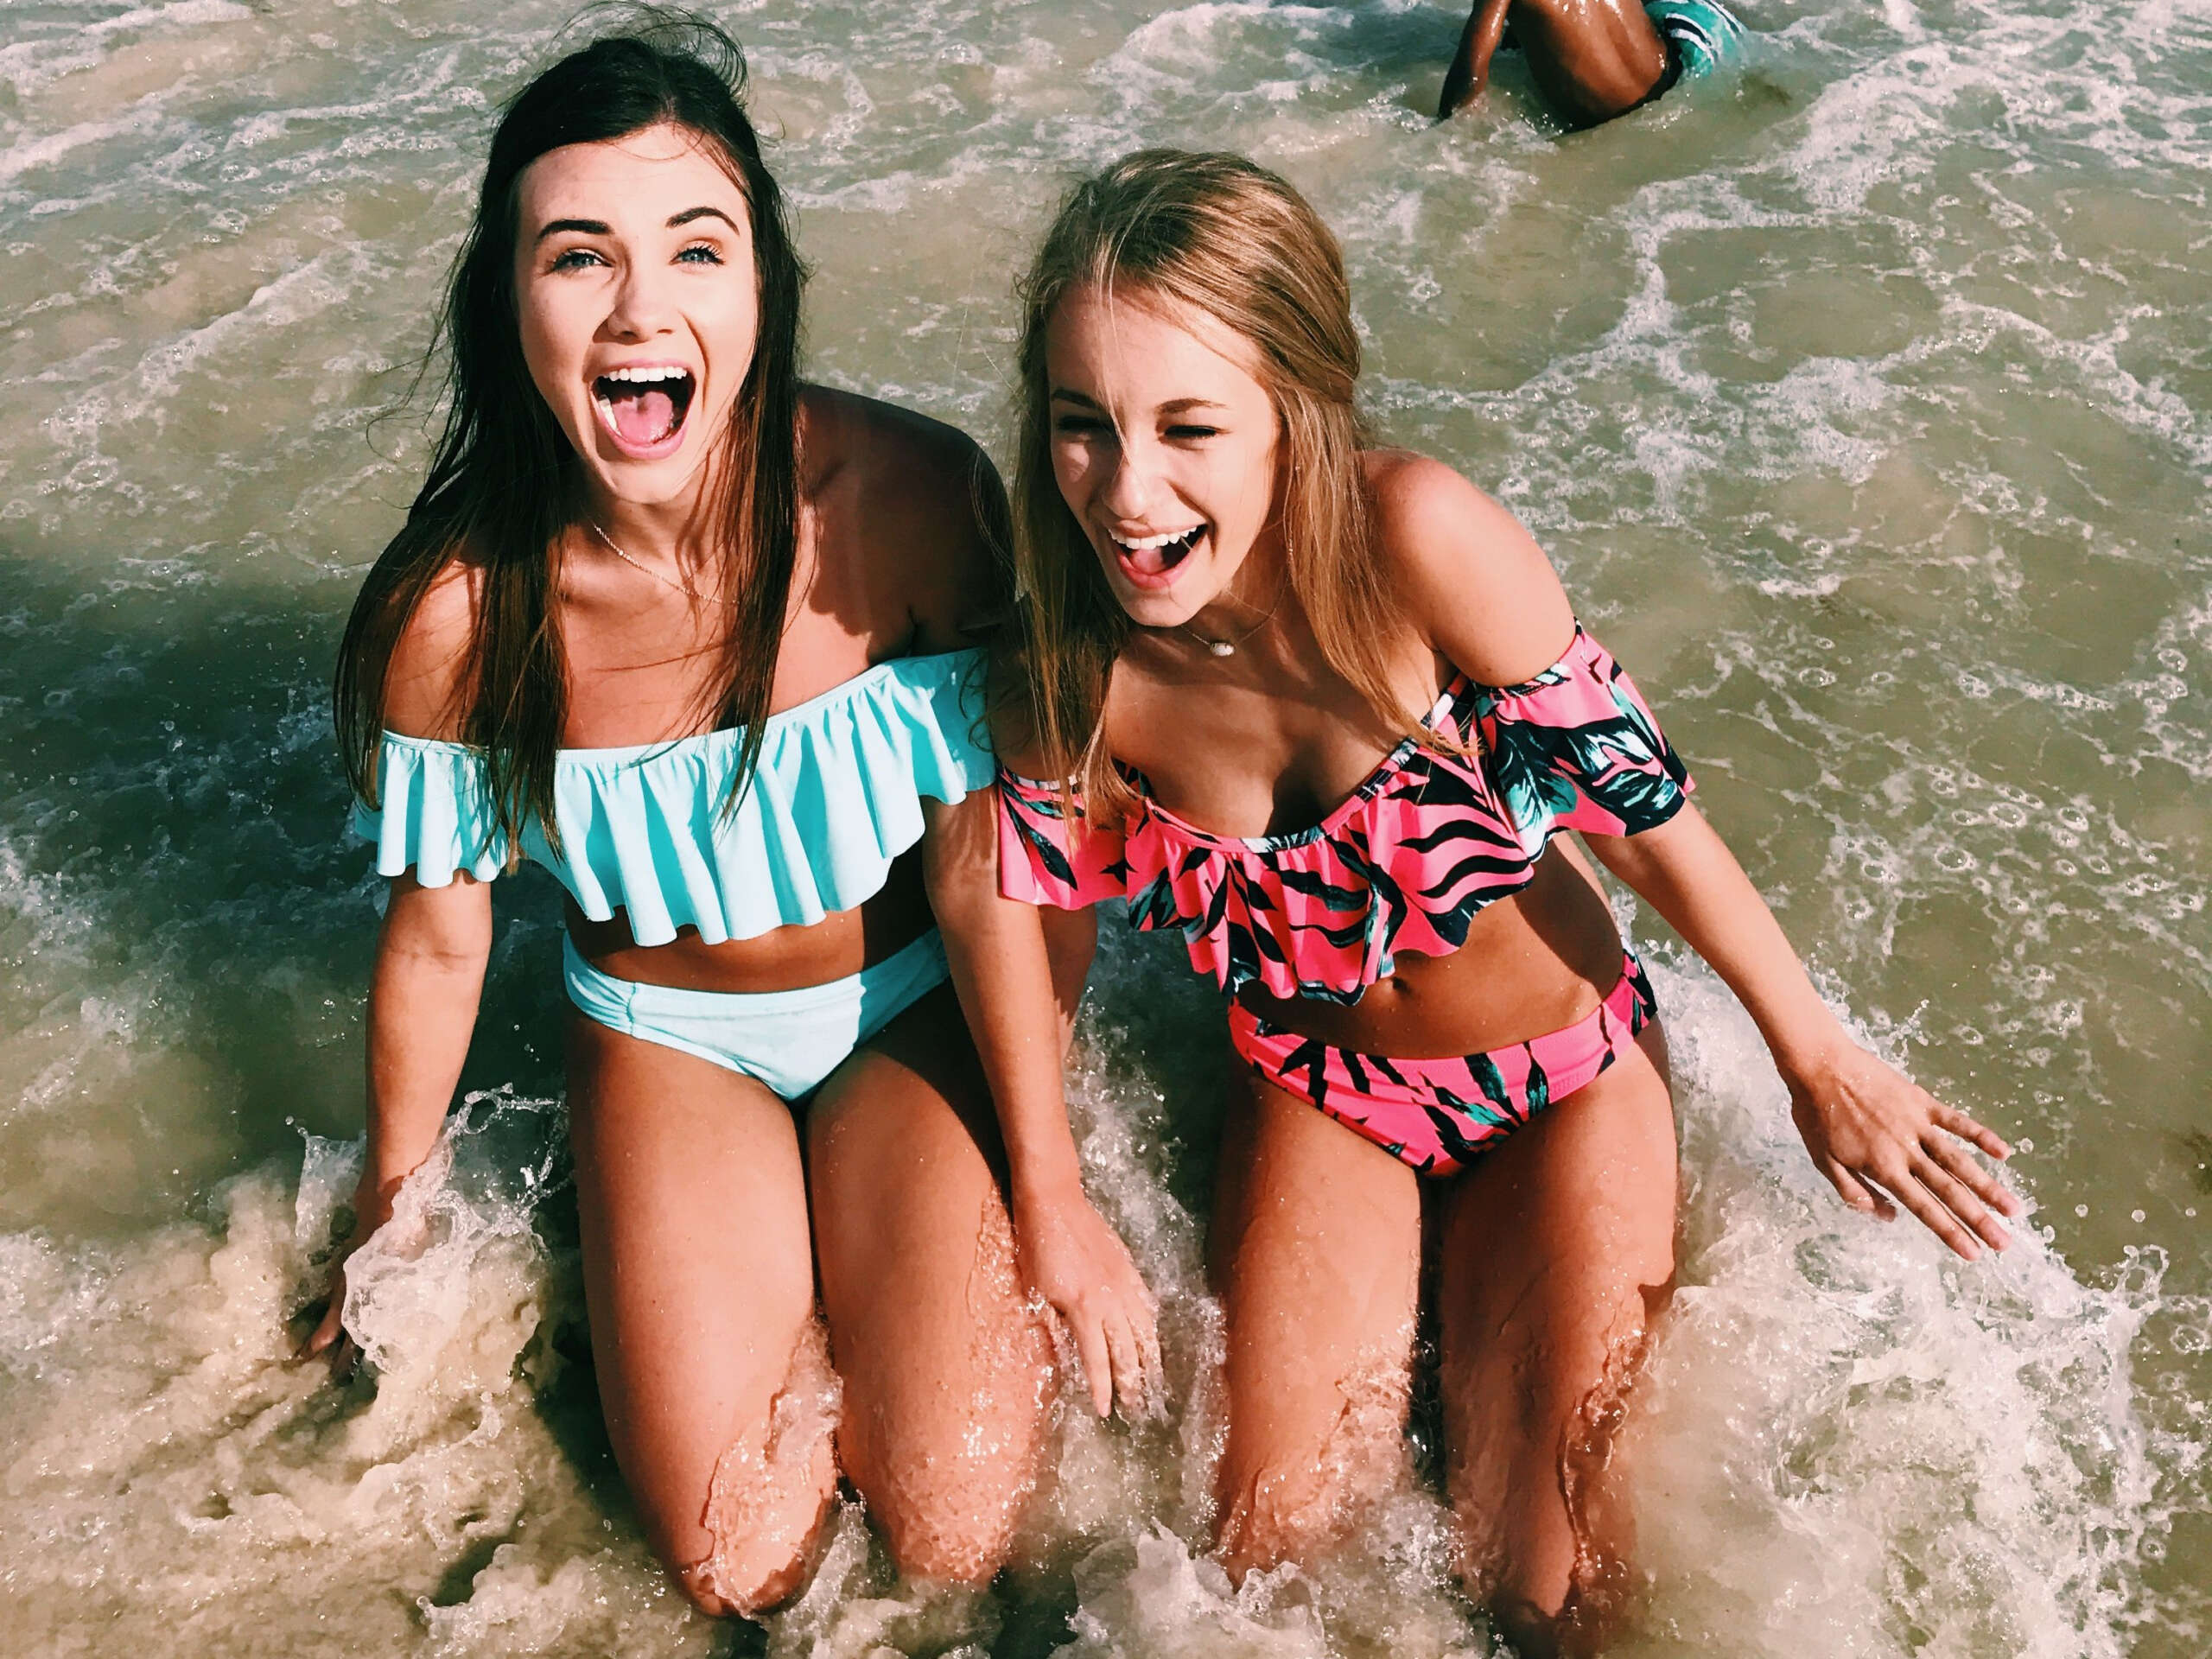 Cute Swimsuit Ideas For That Great Beach Look   Society20